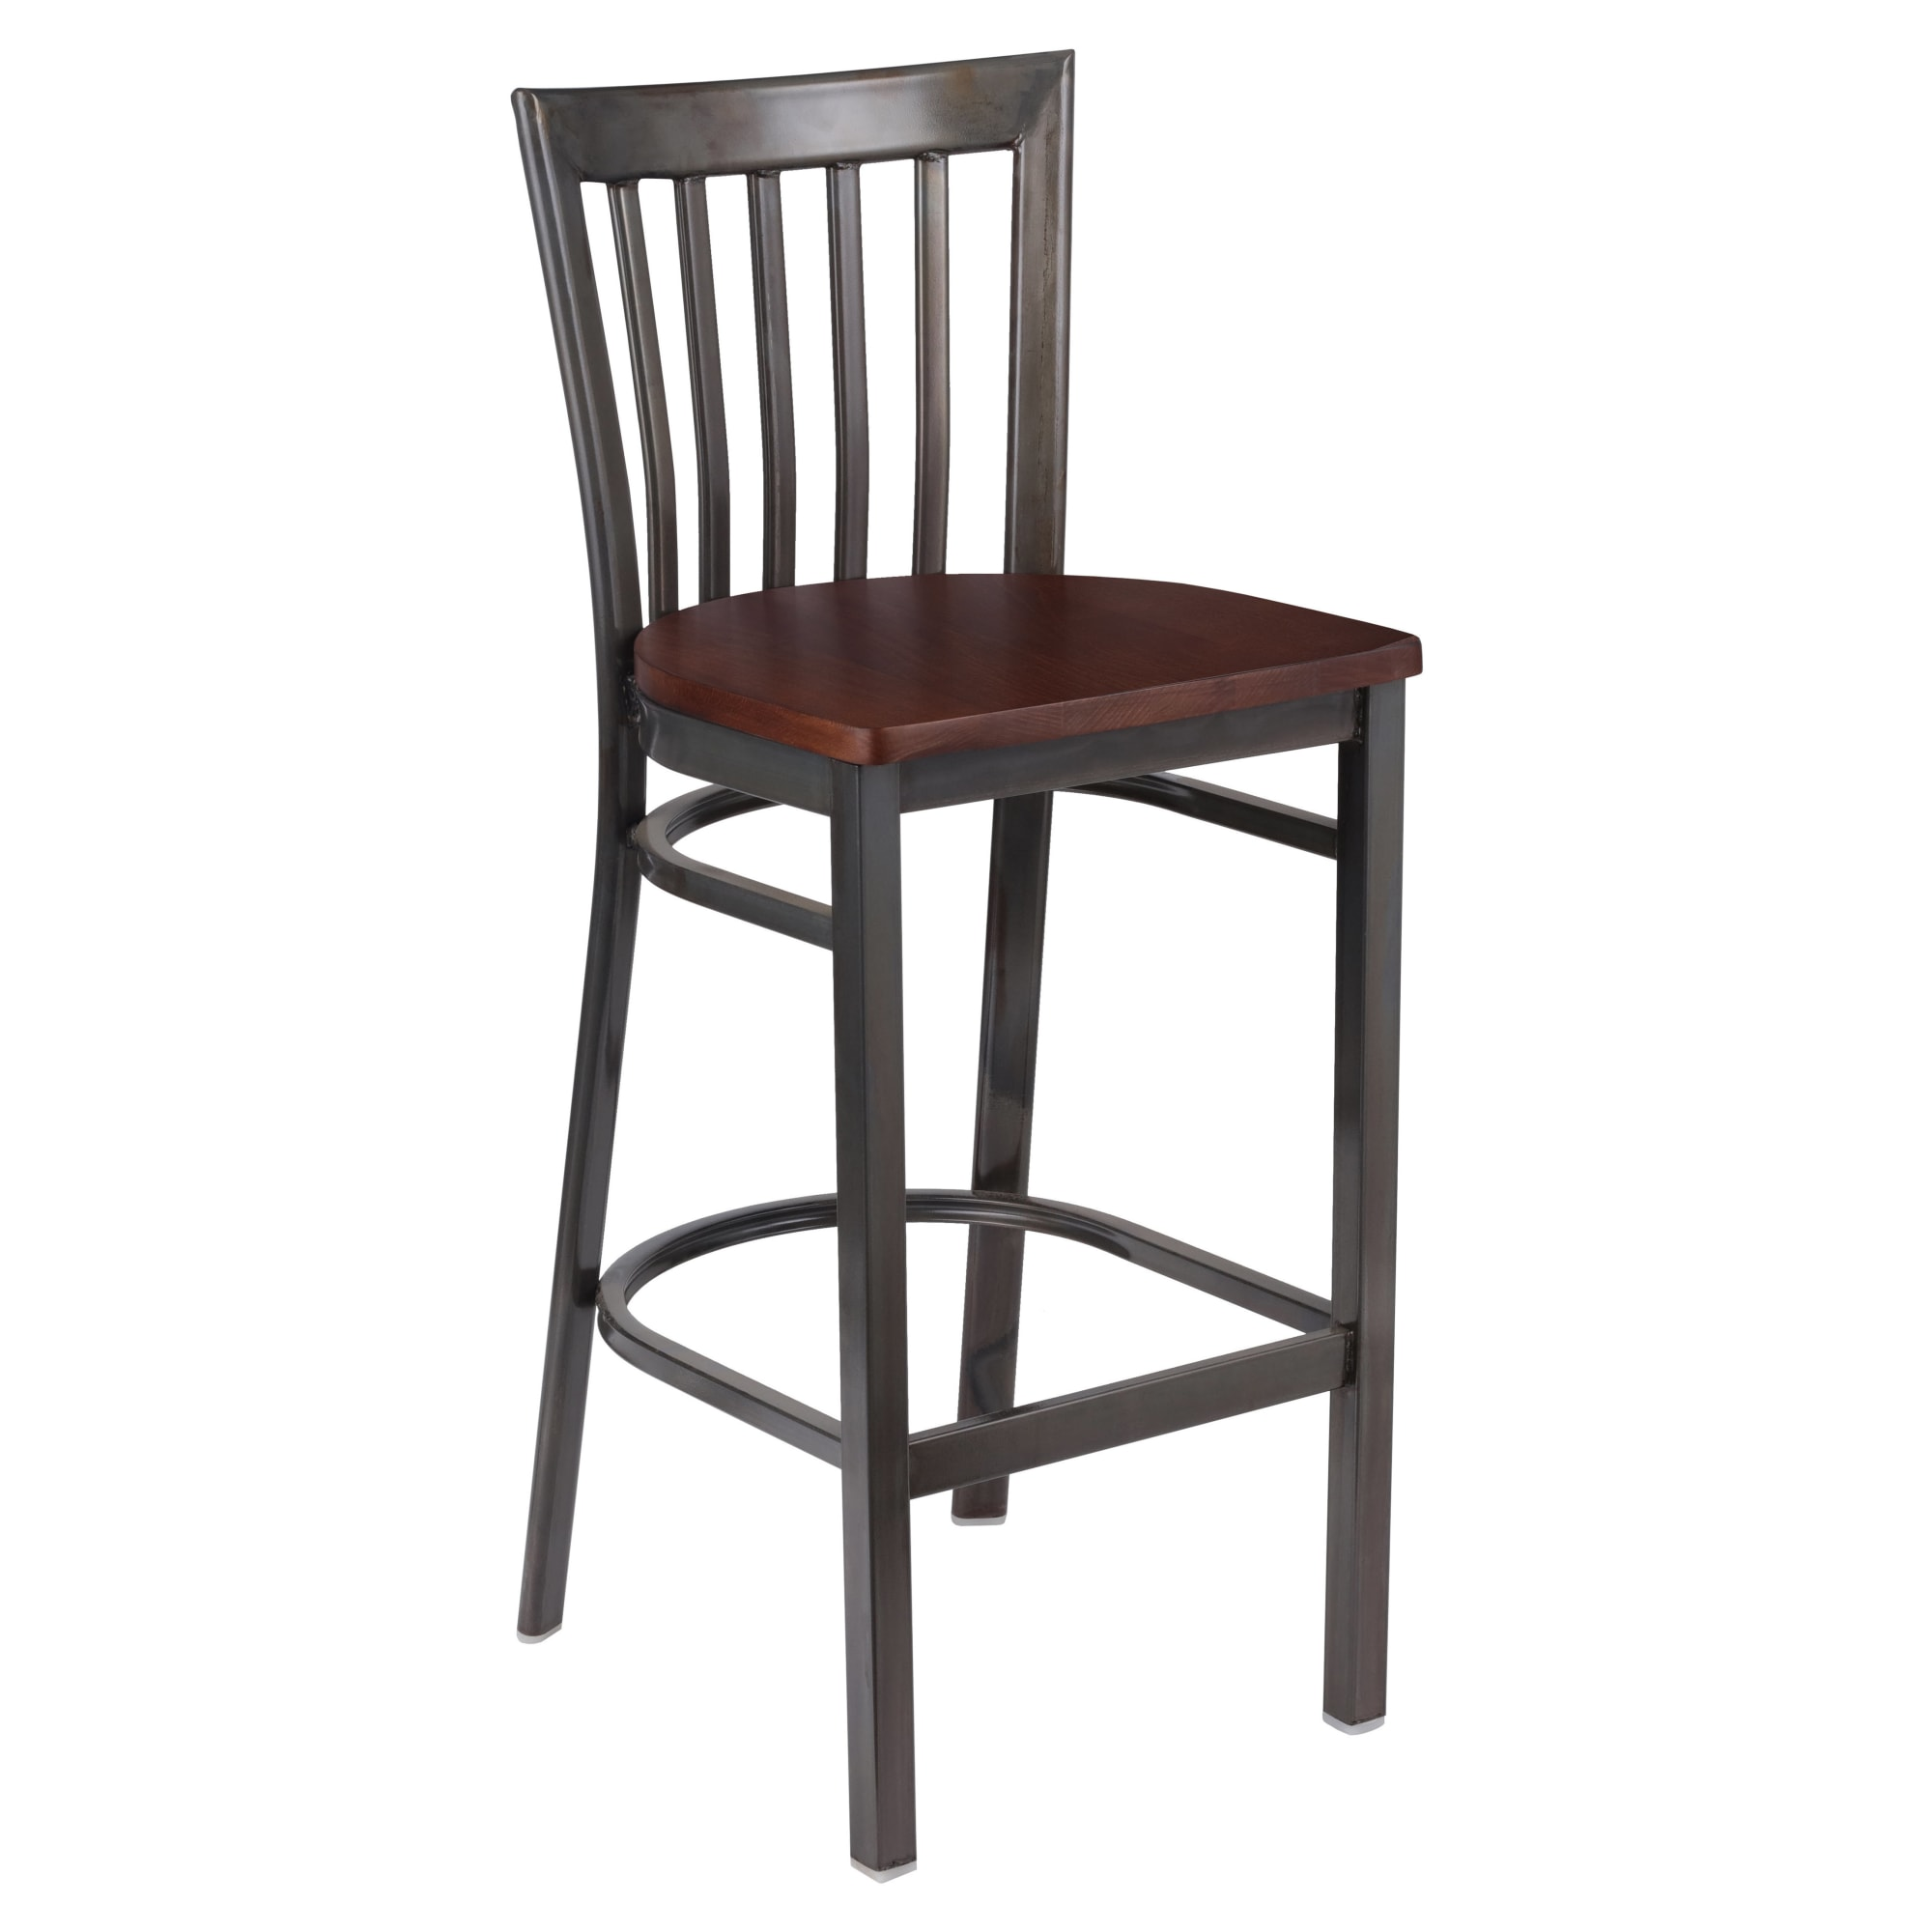 Clear Coat Elongated Back Metal Bar Stool with Clear Coat Elongated Back Metal Bar Stool